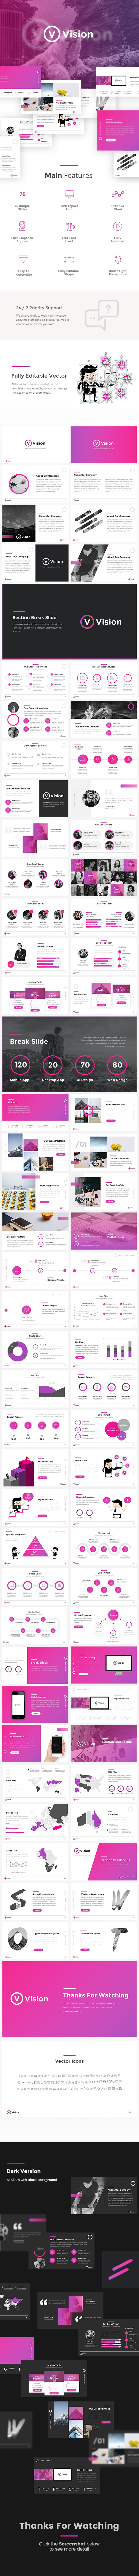 Vision - Creative Powerpoint Template - Creative PowerPoint Templates